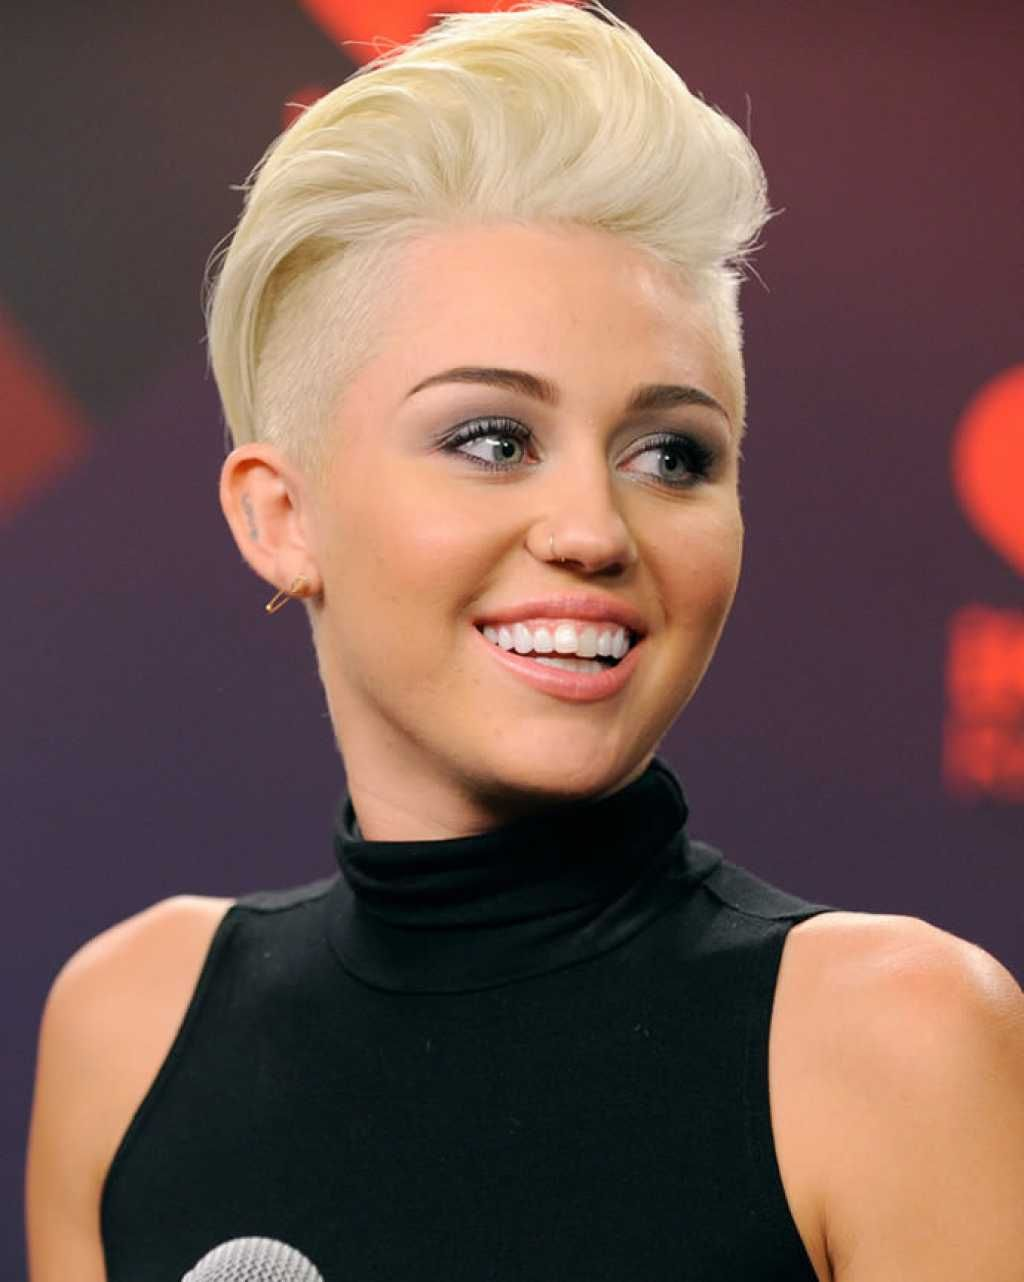 Trendy short haircut with shaved sides onelady hair